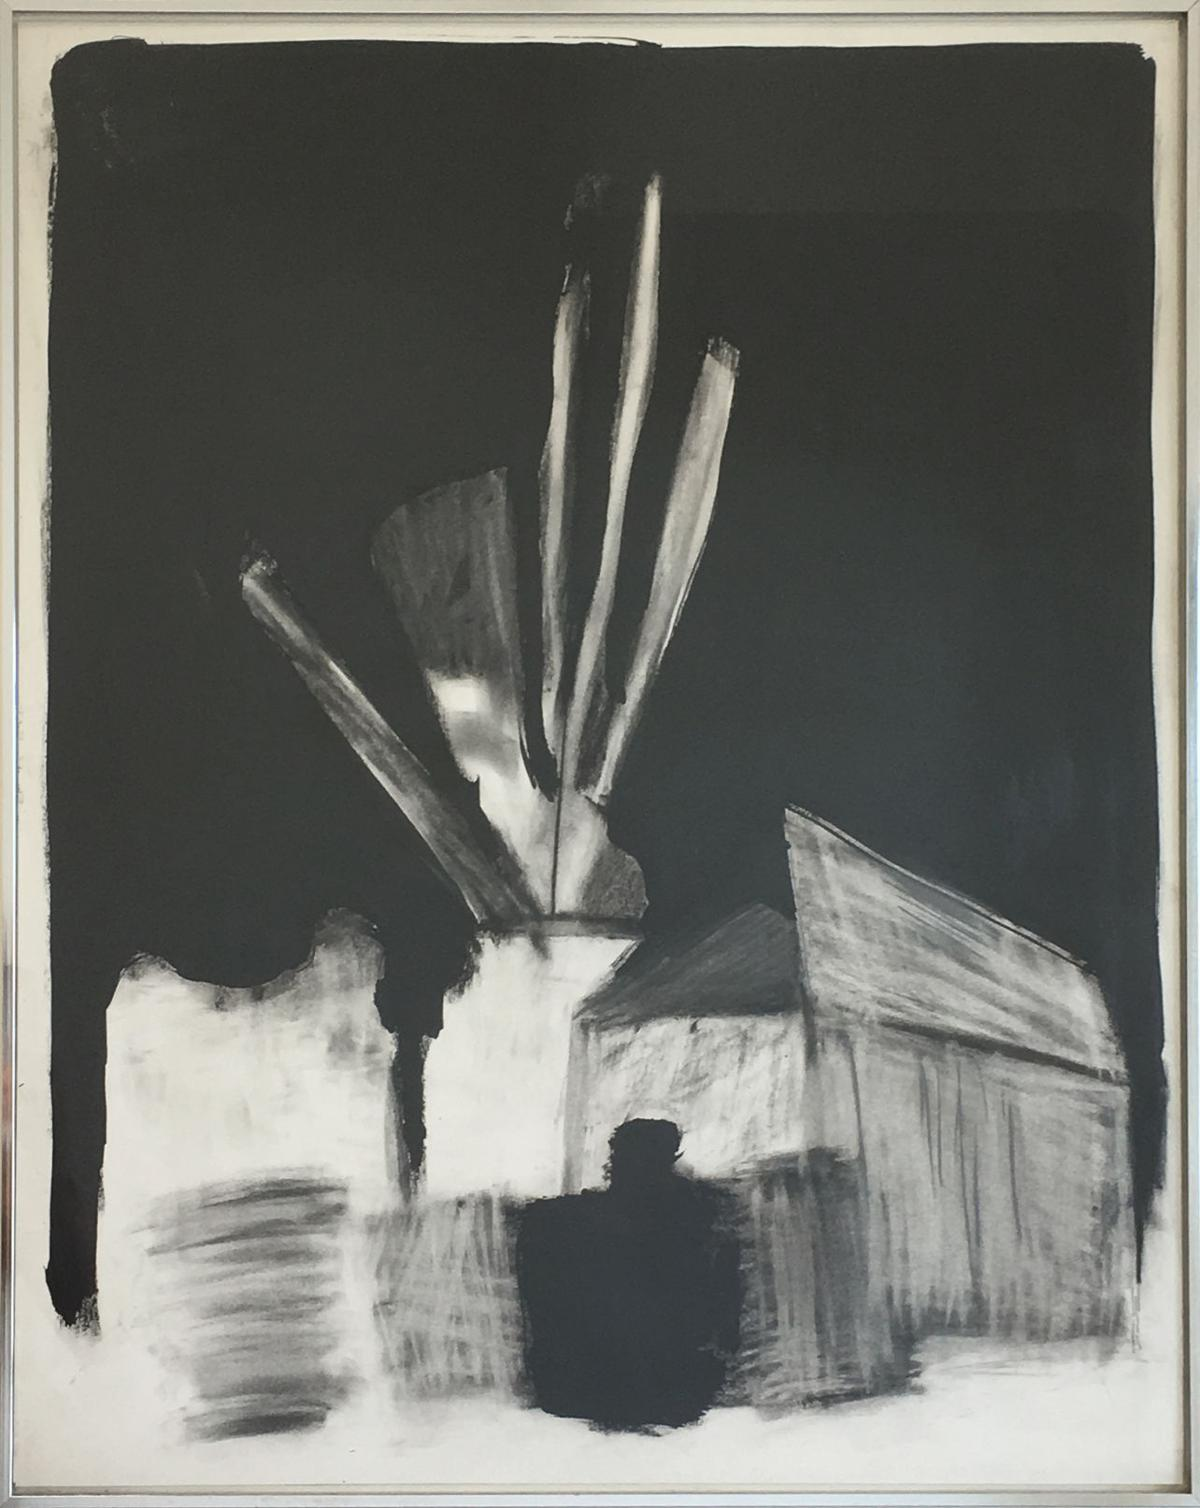 x-Wesley Rusnell_Still-Life_28p5x22p5_ink charcoal lead on paper_framed.jpg